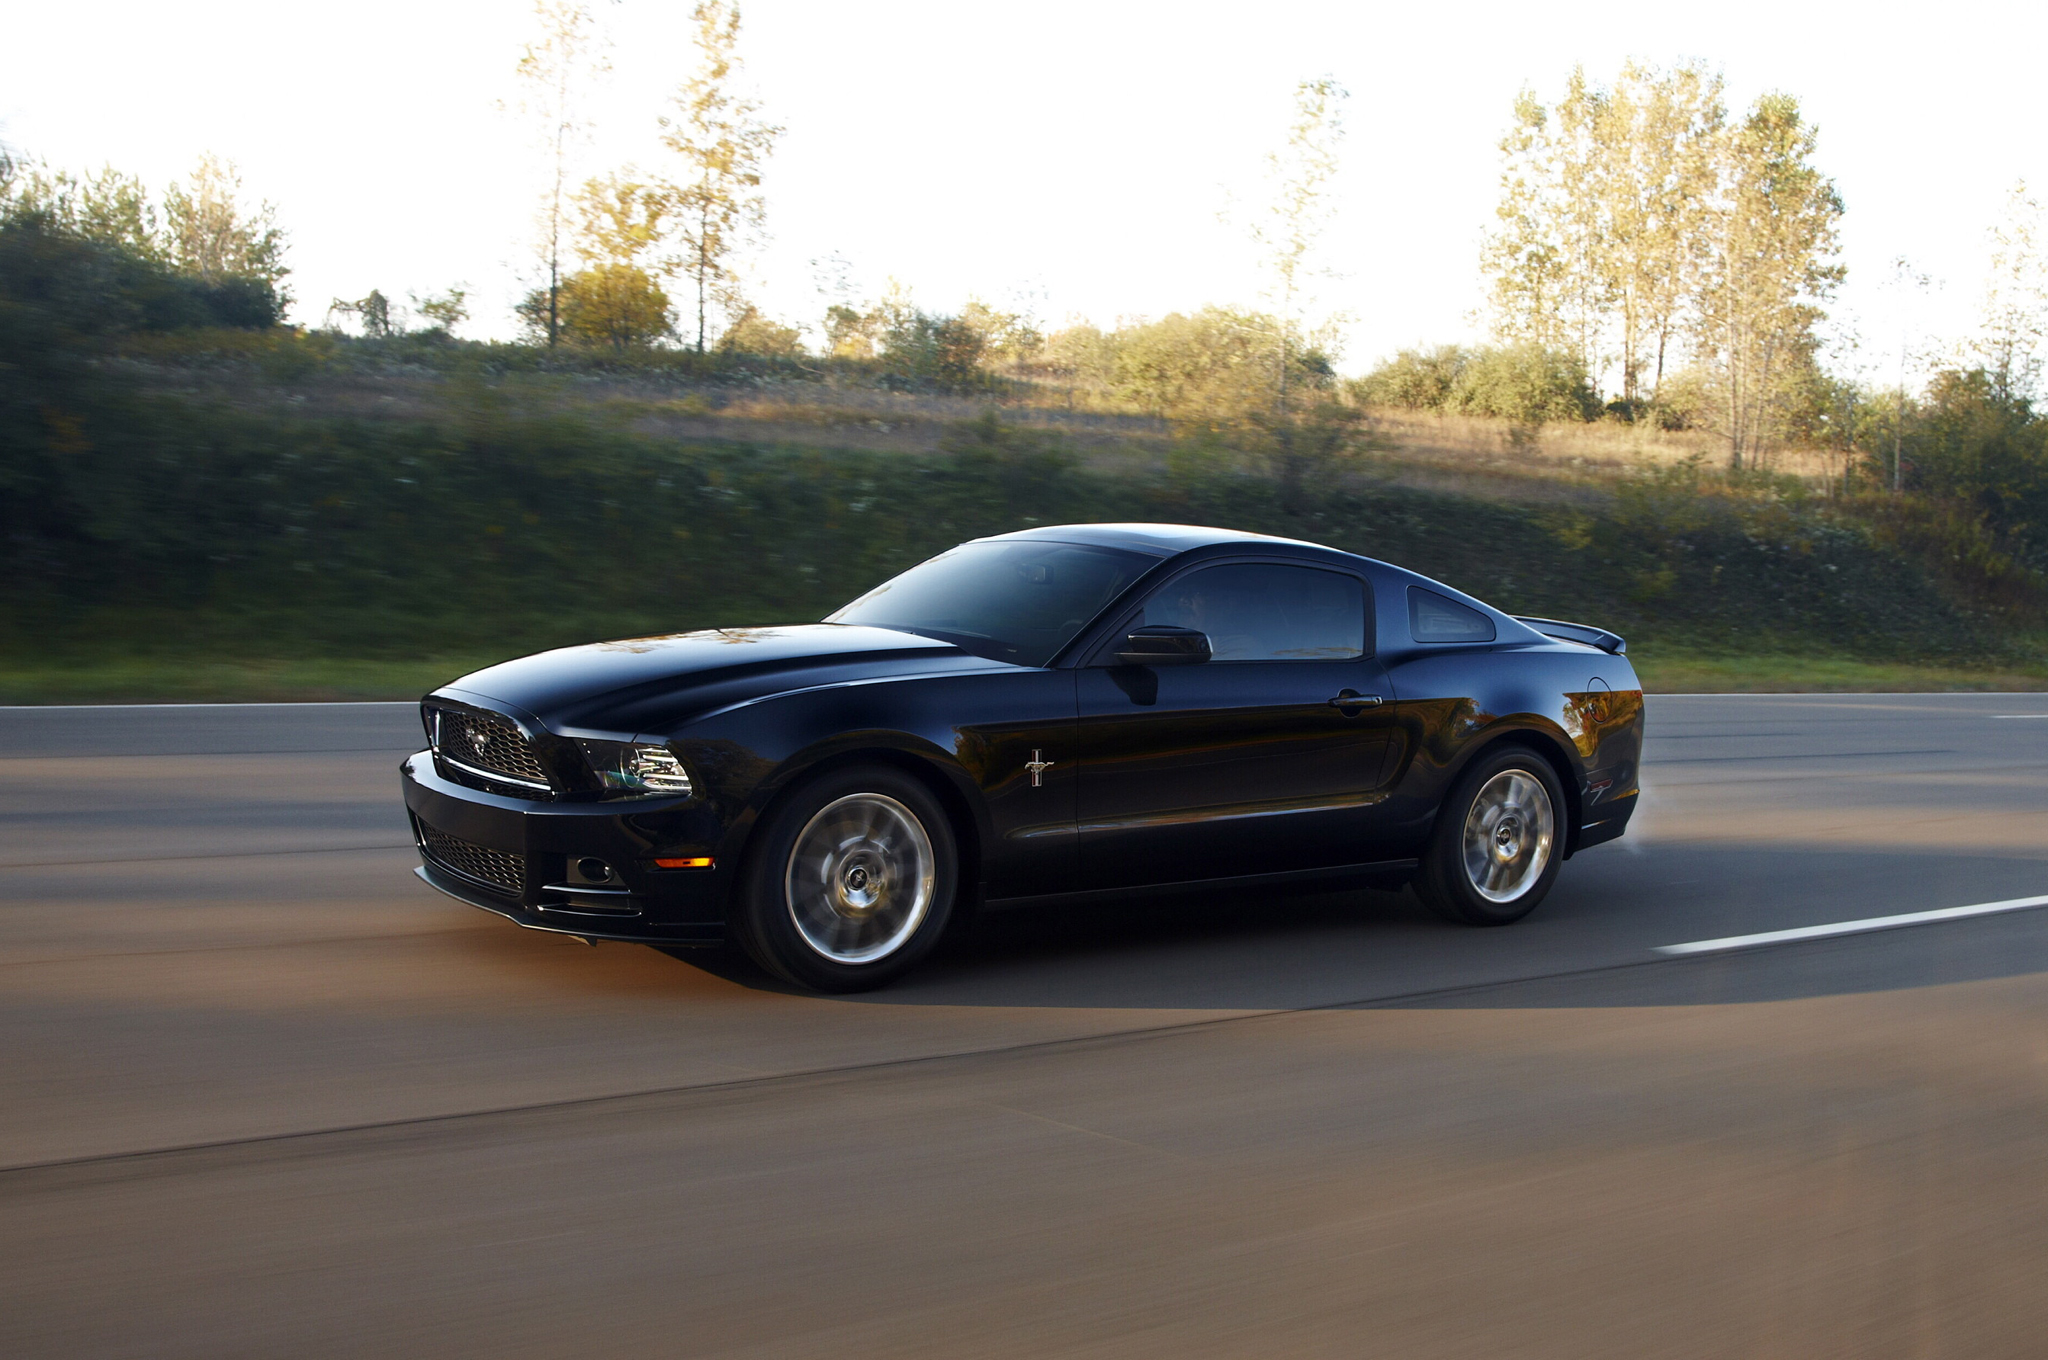 2013 Ford Mustang #21